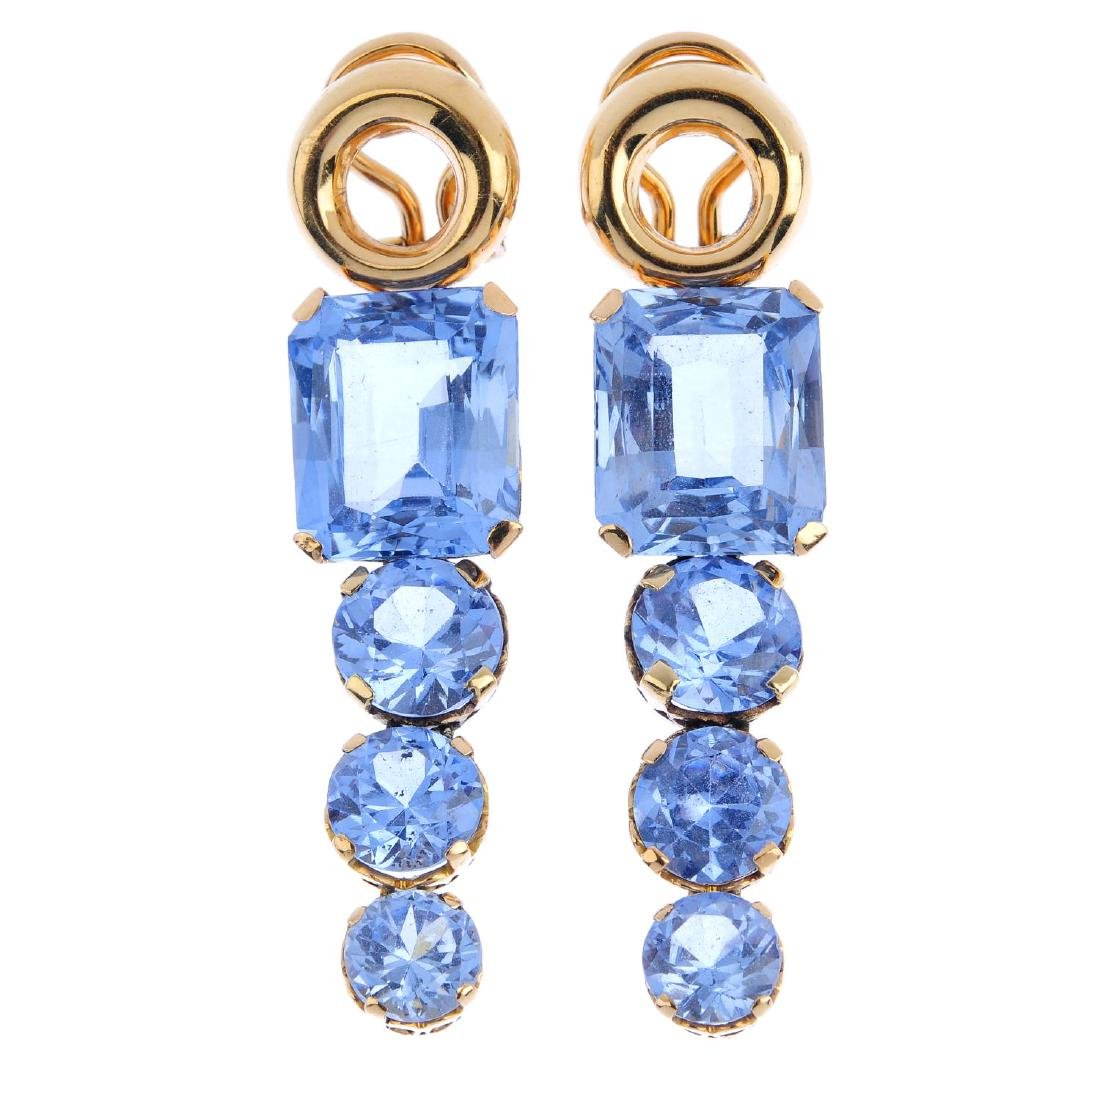 A pair of synthetic spinel earrings. Each designed as a